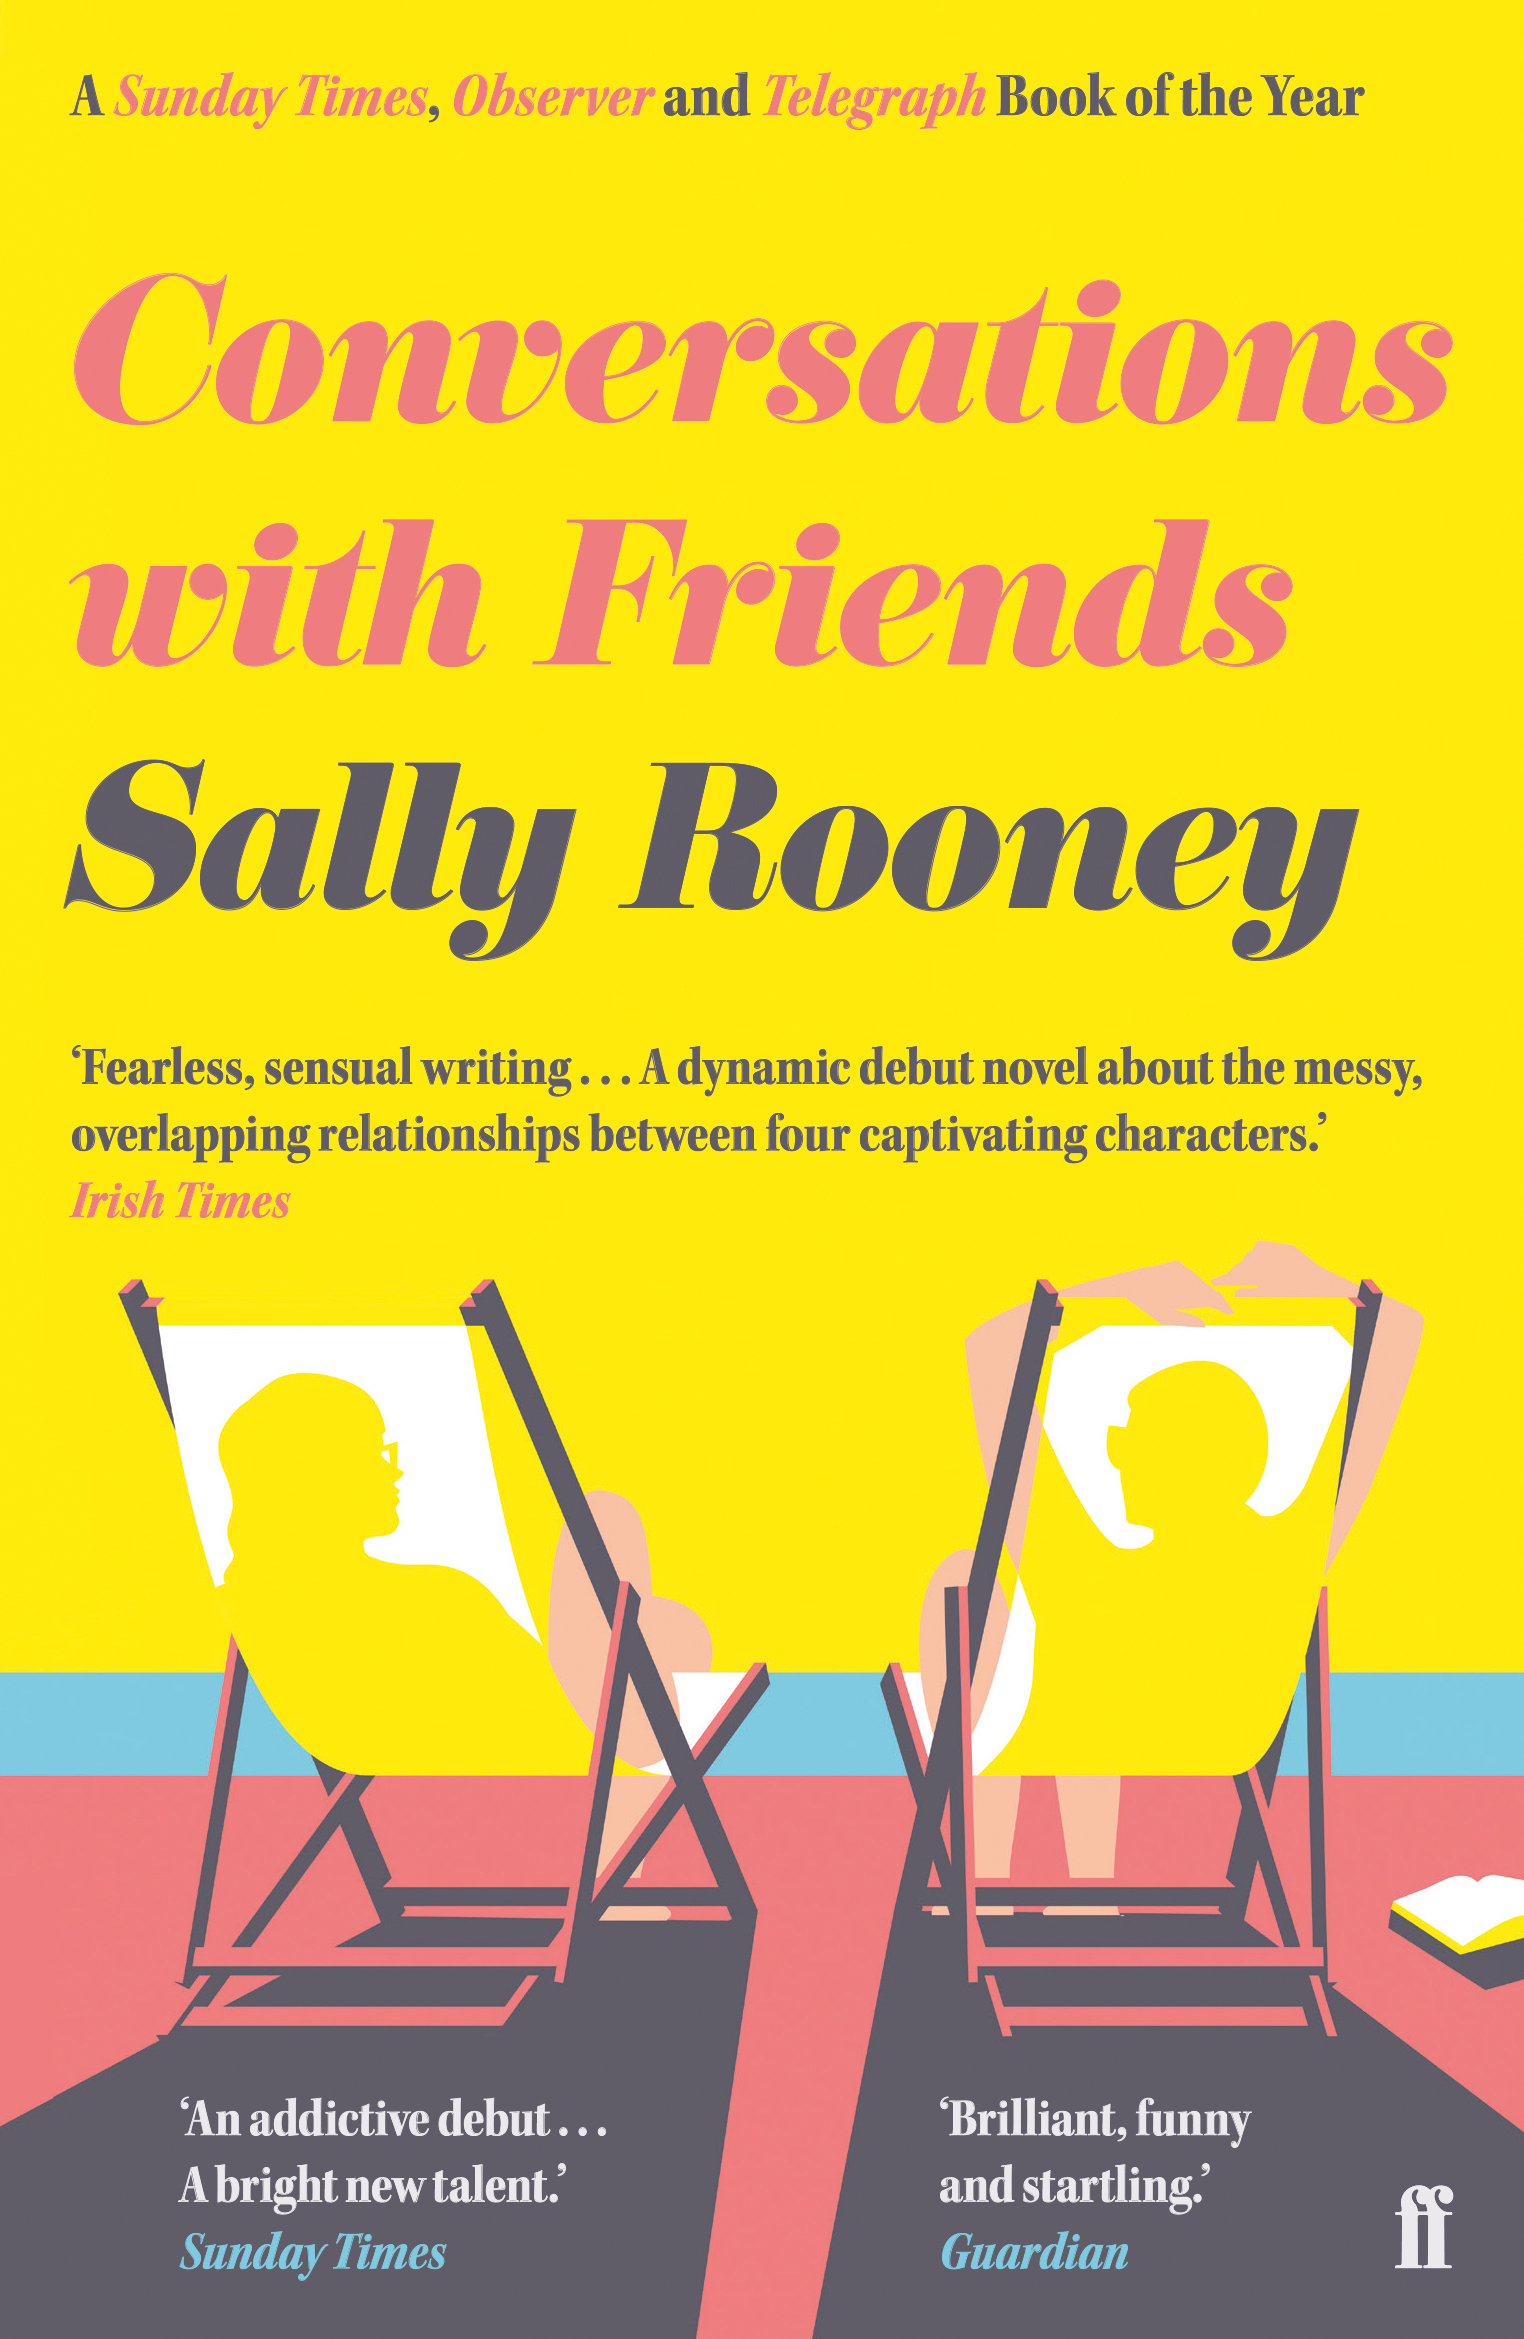 Book Recommendations: Conversations with Friends by Sally Rooney